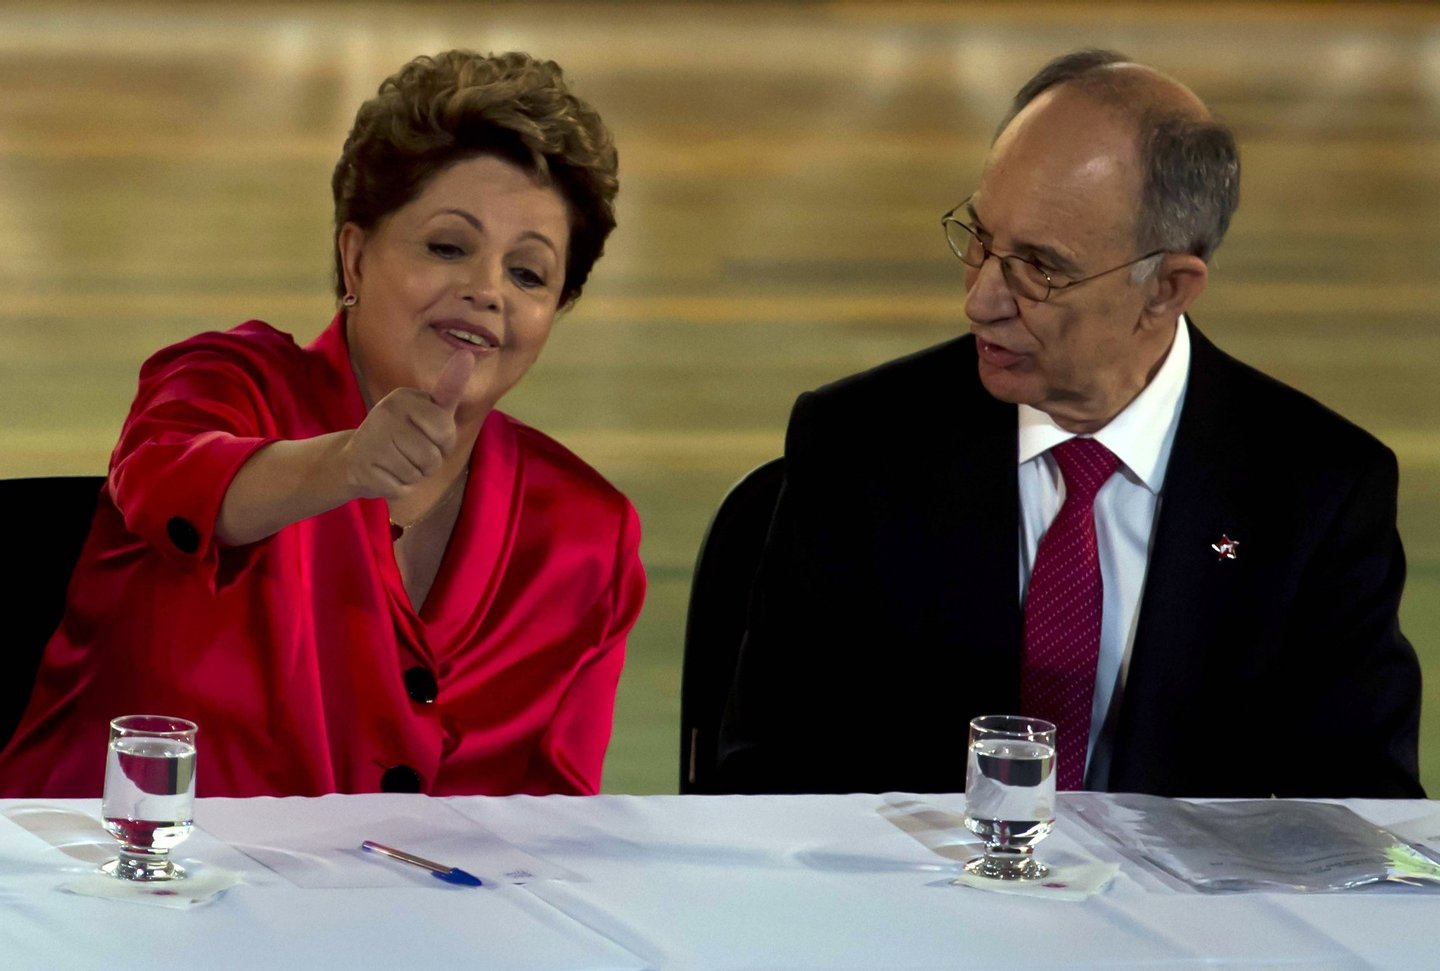 Brazilian President Dilma Rousseff (L) gestures next to Rui Falcao, president of the Workers Party (PT), during celebrations to mark the 34th anniversary of the founding of the Workers Party (PT) in Sao Paulo, Brazil on February 10, 2014. AFP PHOTO / NELSON ALMEIDA (Photo credit should read NELSON ALMEIDA/AFP/Getty Images)